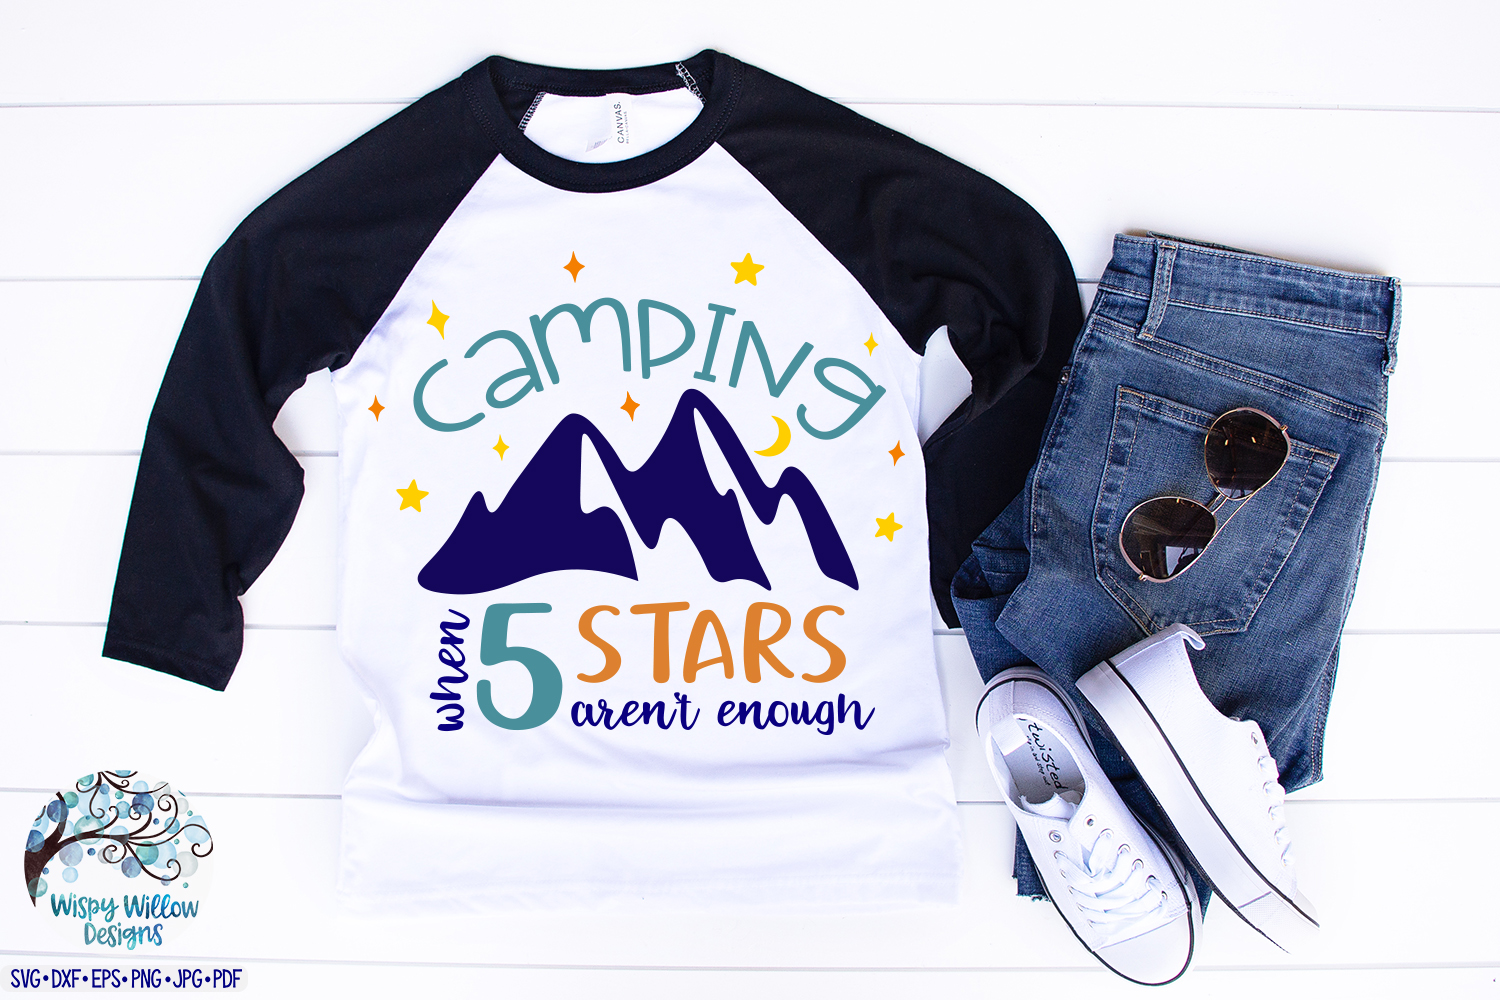 Camping When 5 Stars Aren't Enough | Camping SVG Cut File example image 2